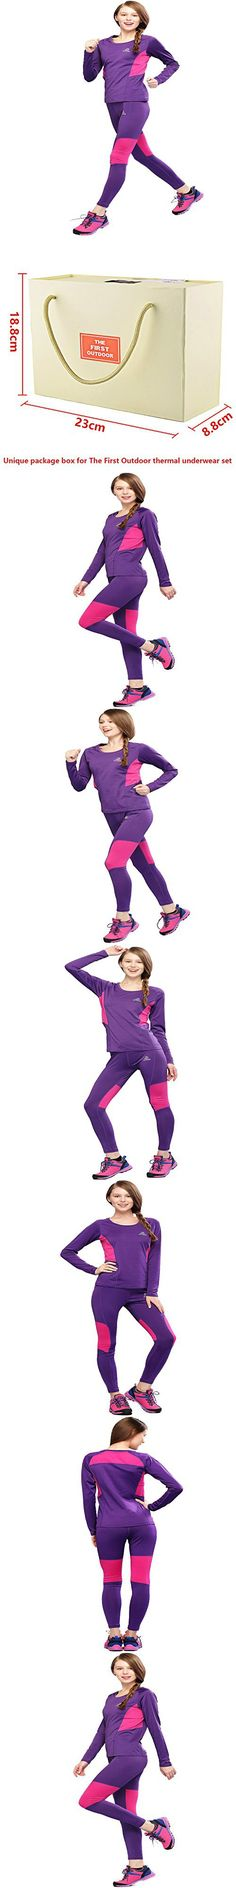 The First Outdoor Women's Athletic Thermal Underwear Set Small Violet